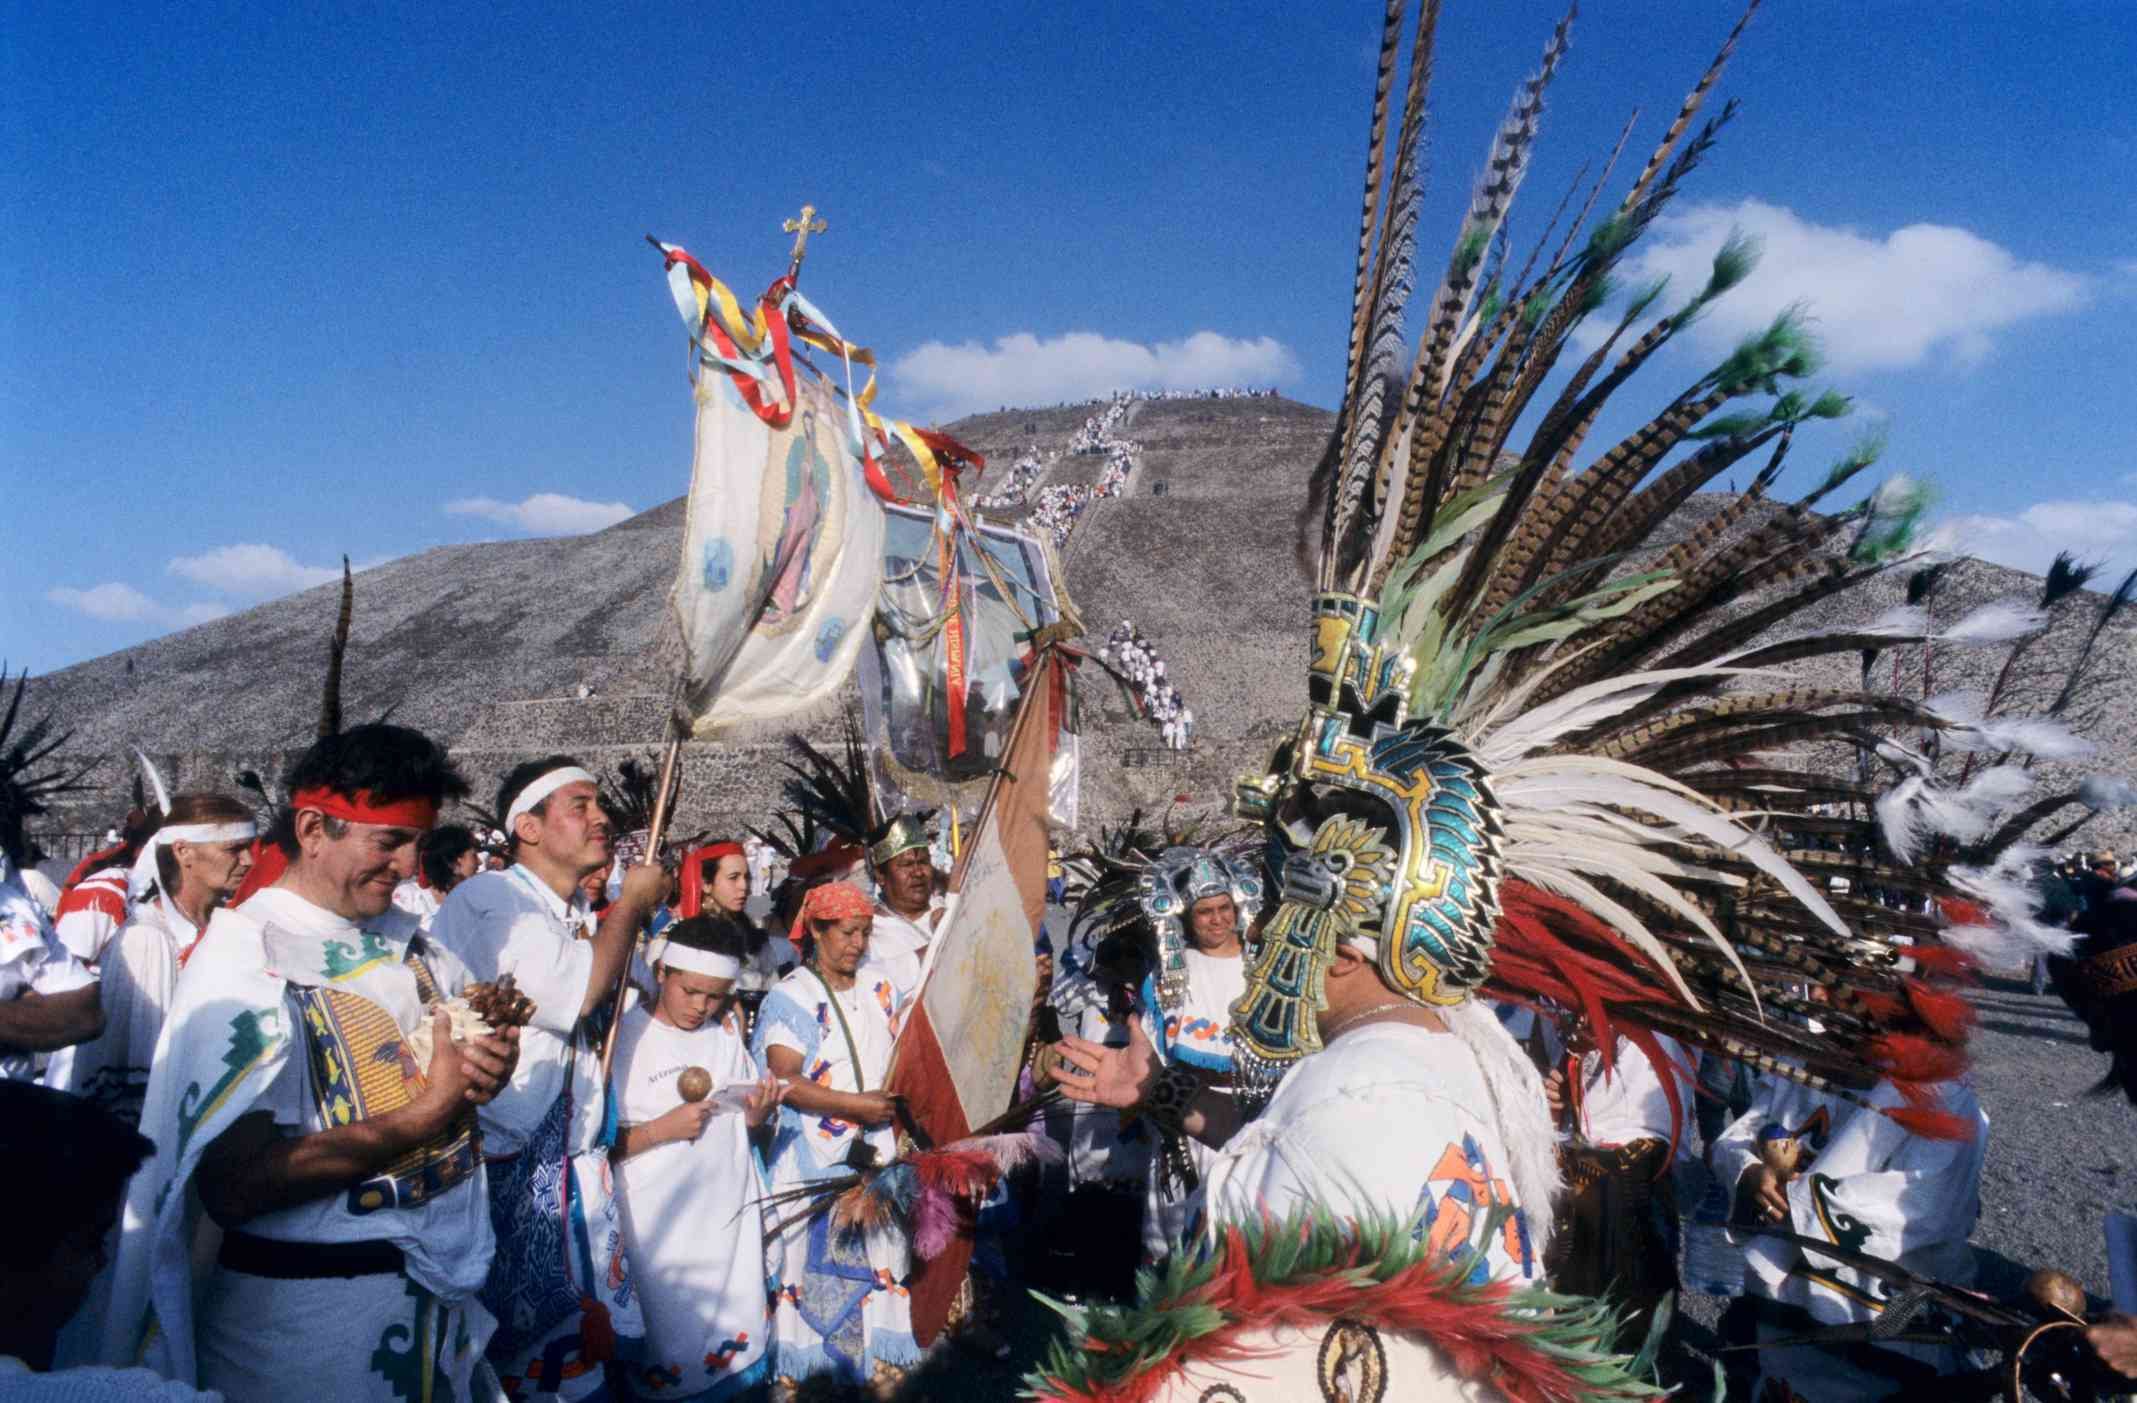 Celebration of the Spring Equinox at Teotihuacan